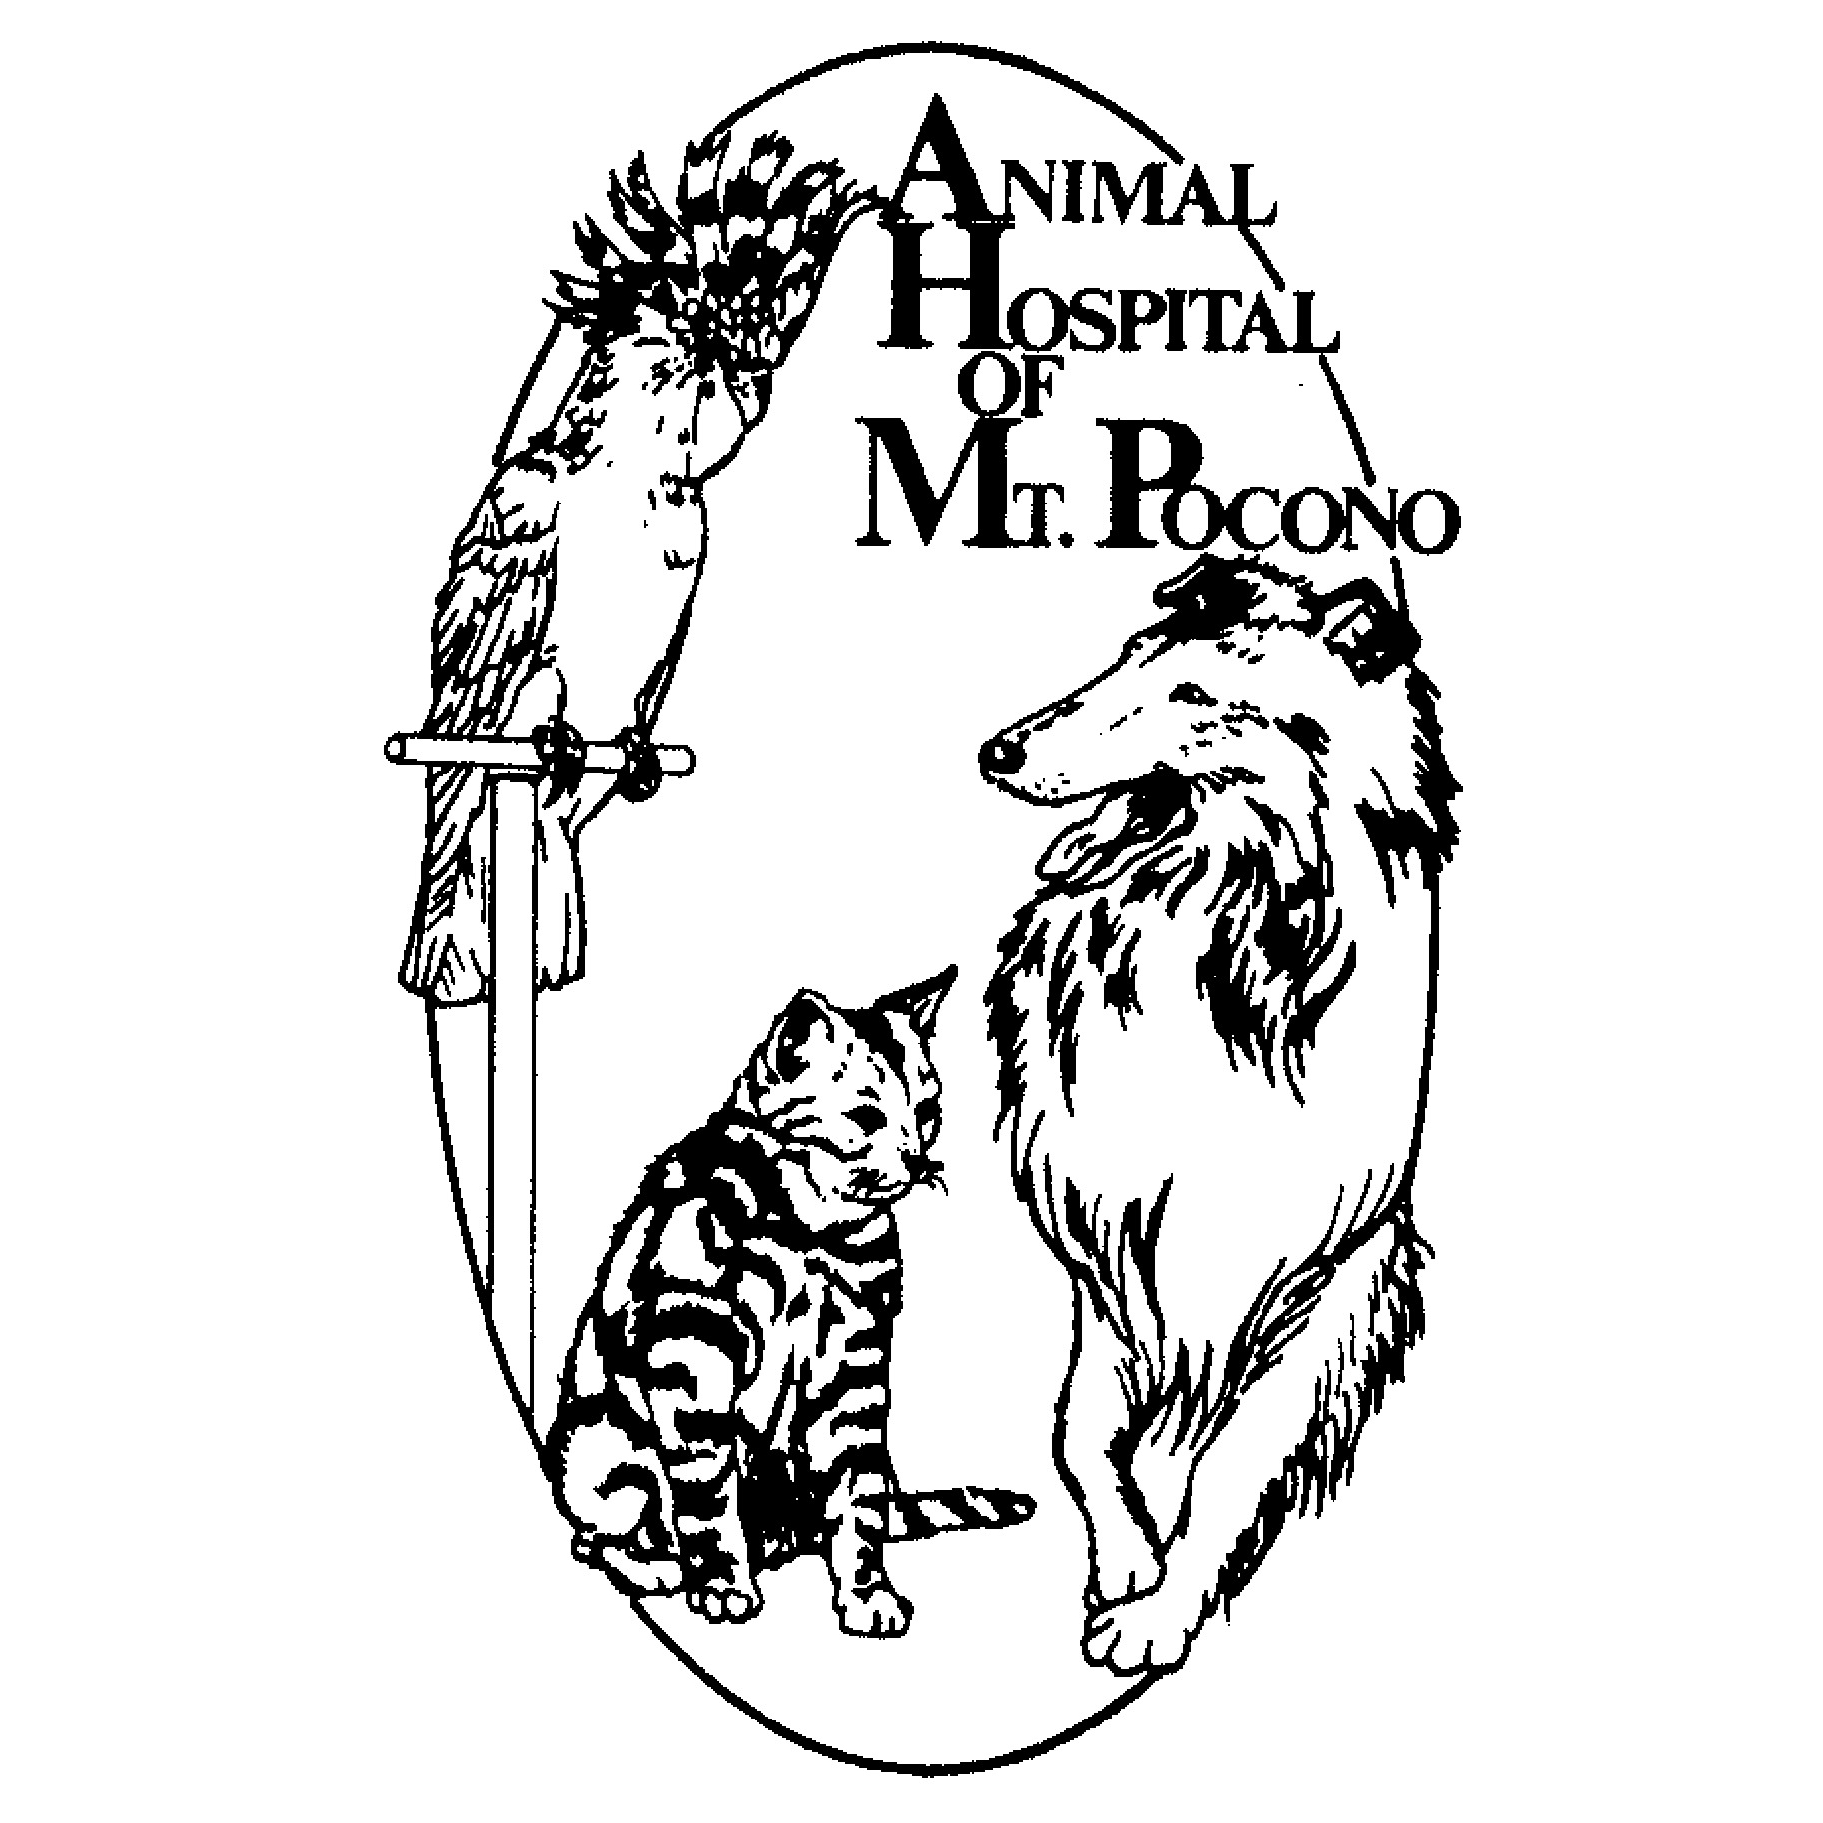 Animal Hospital of Mount Pocono